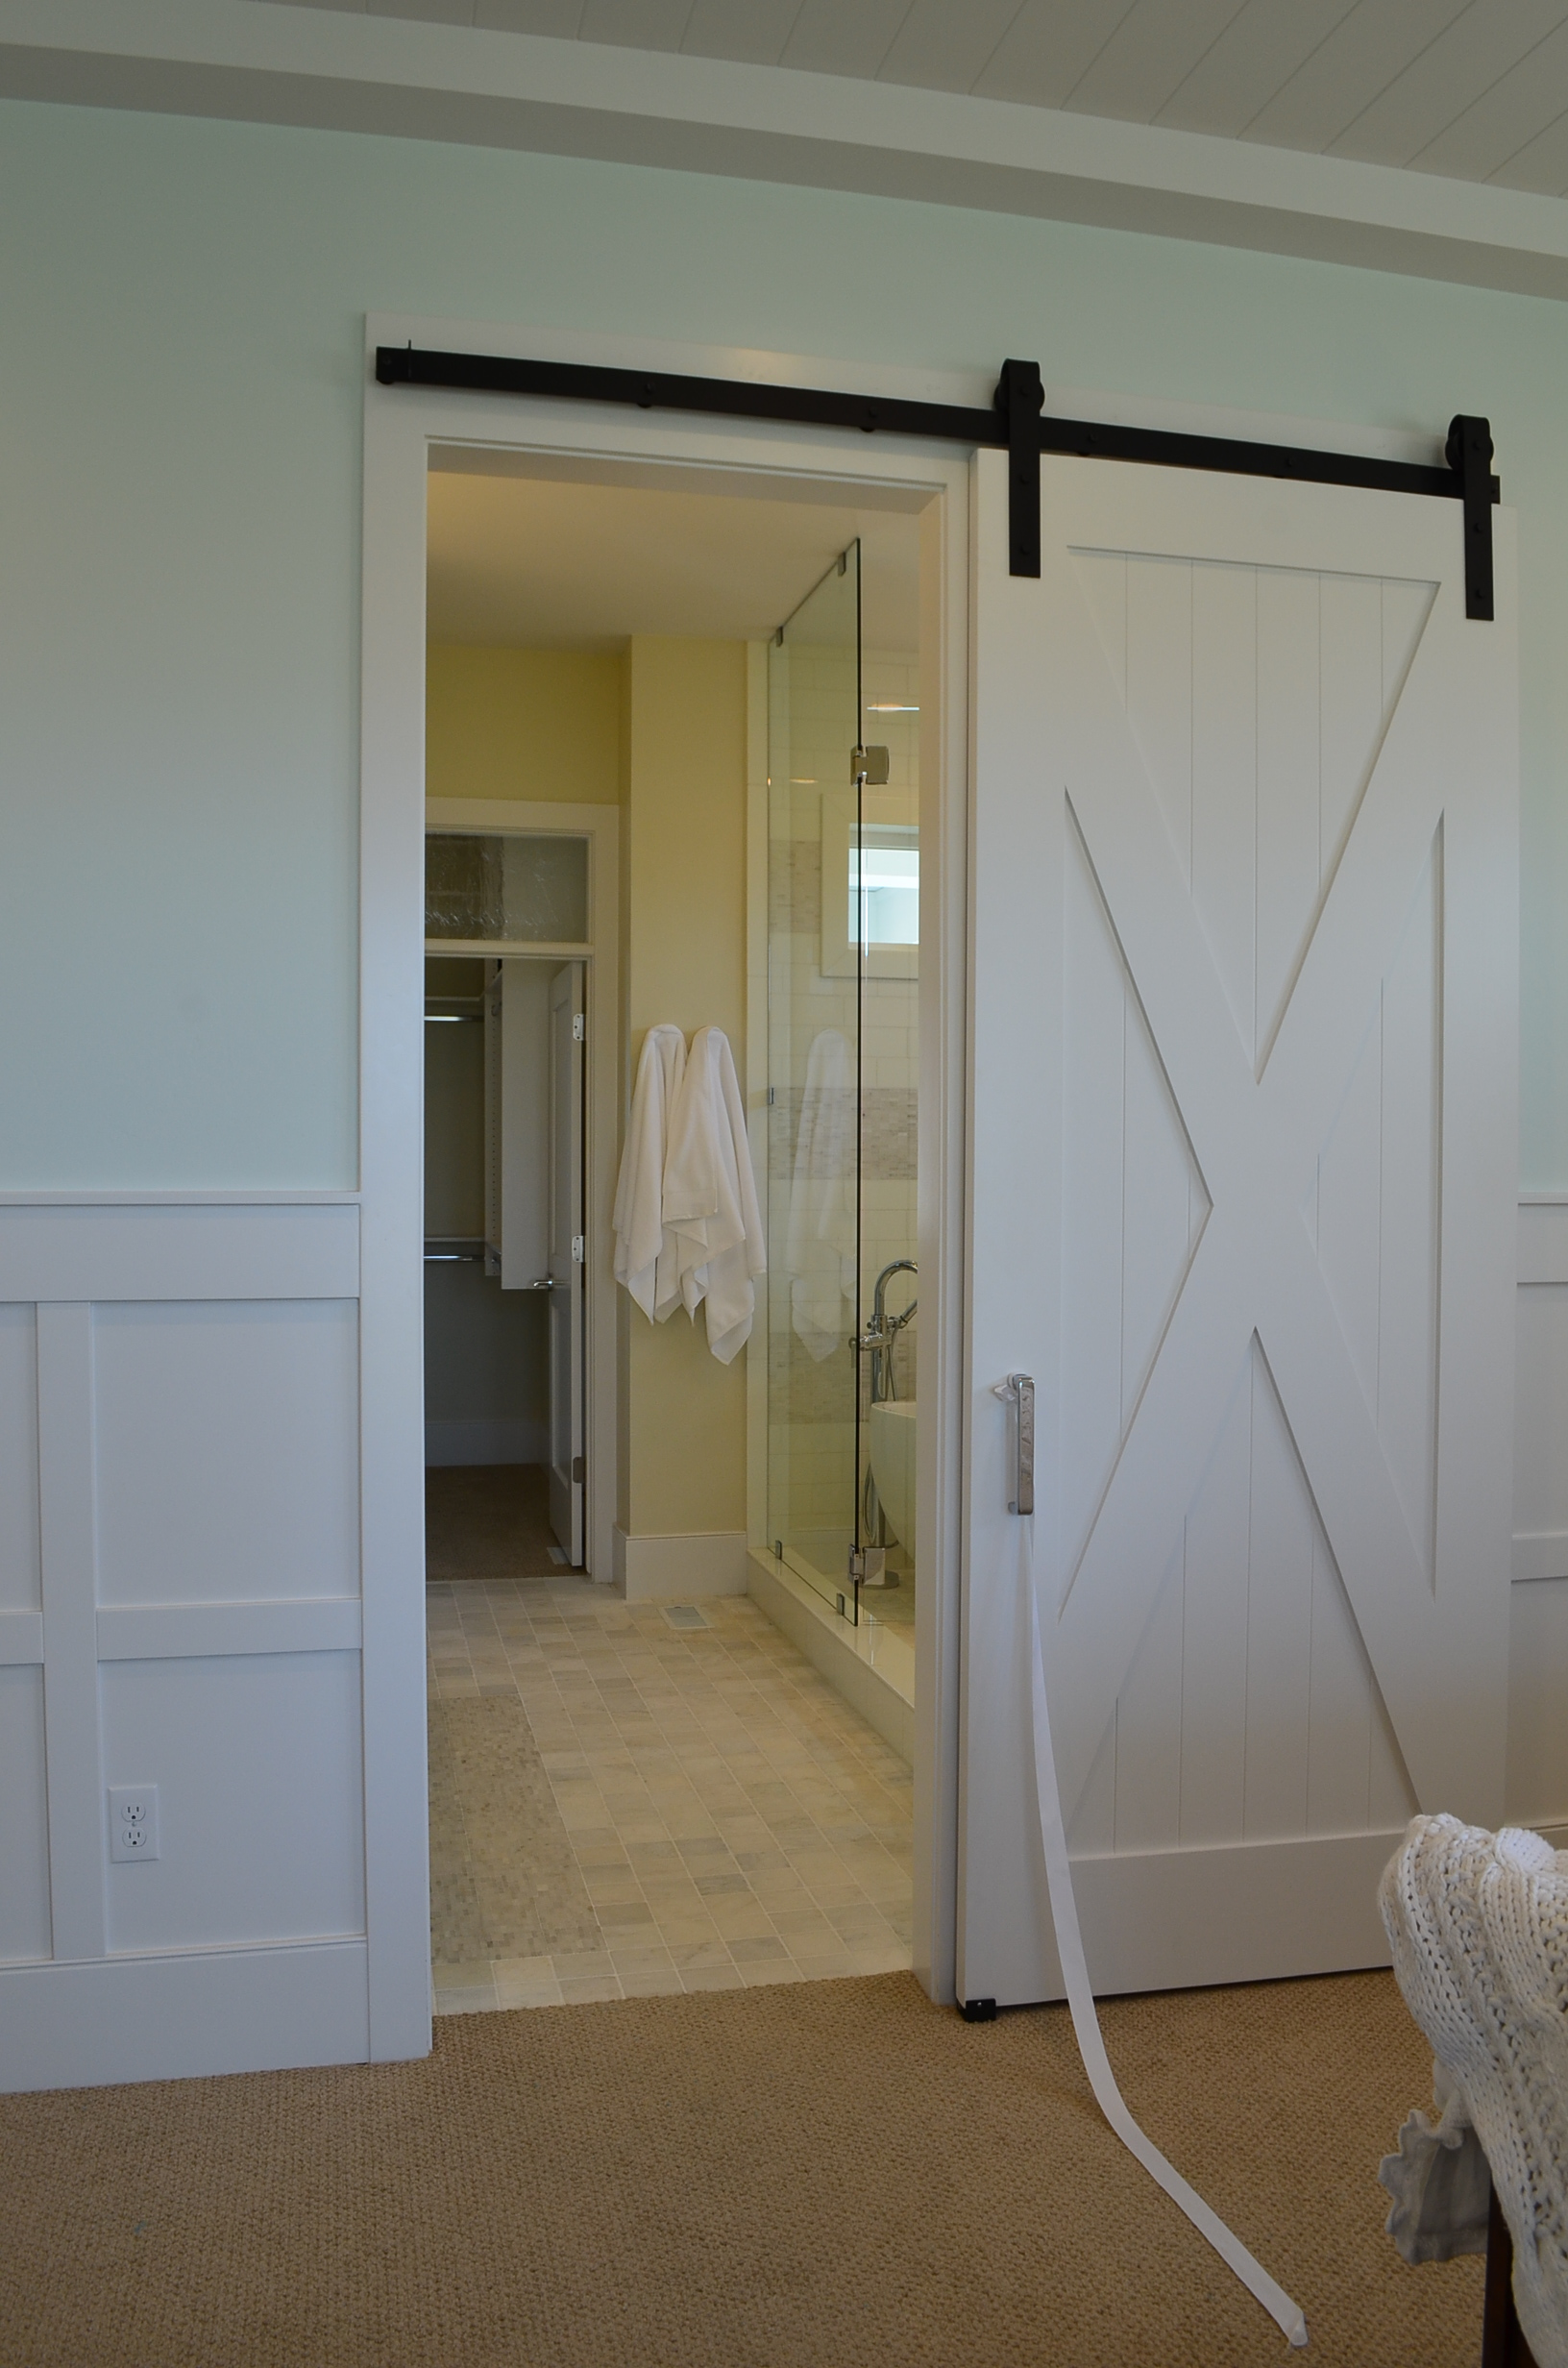 10 barn door designs for any style home page 5 of 11 for Barn door designs